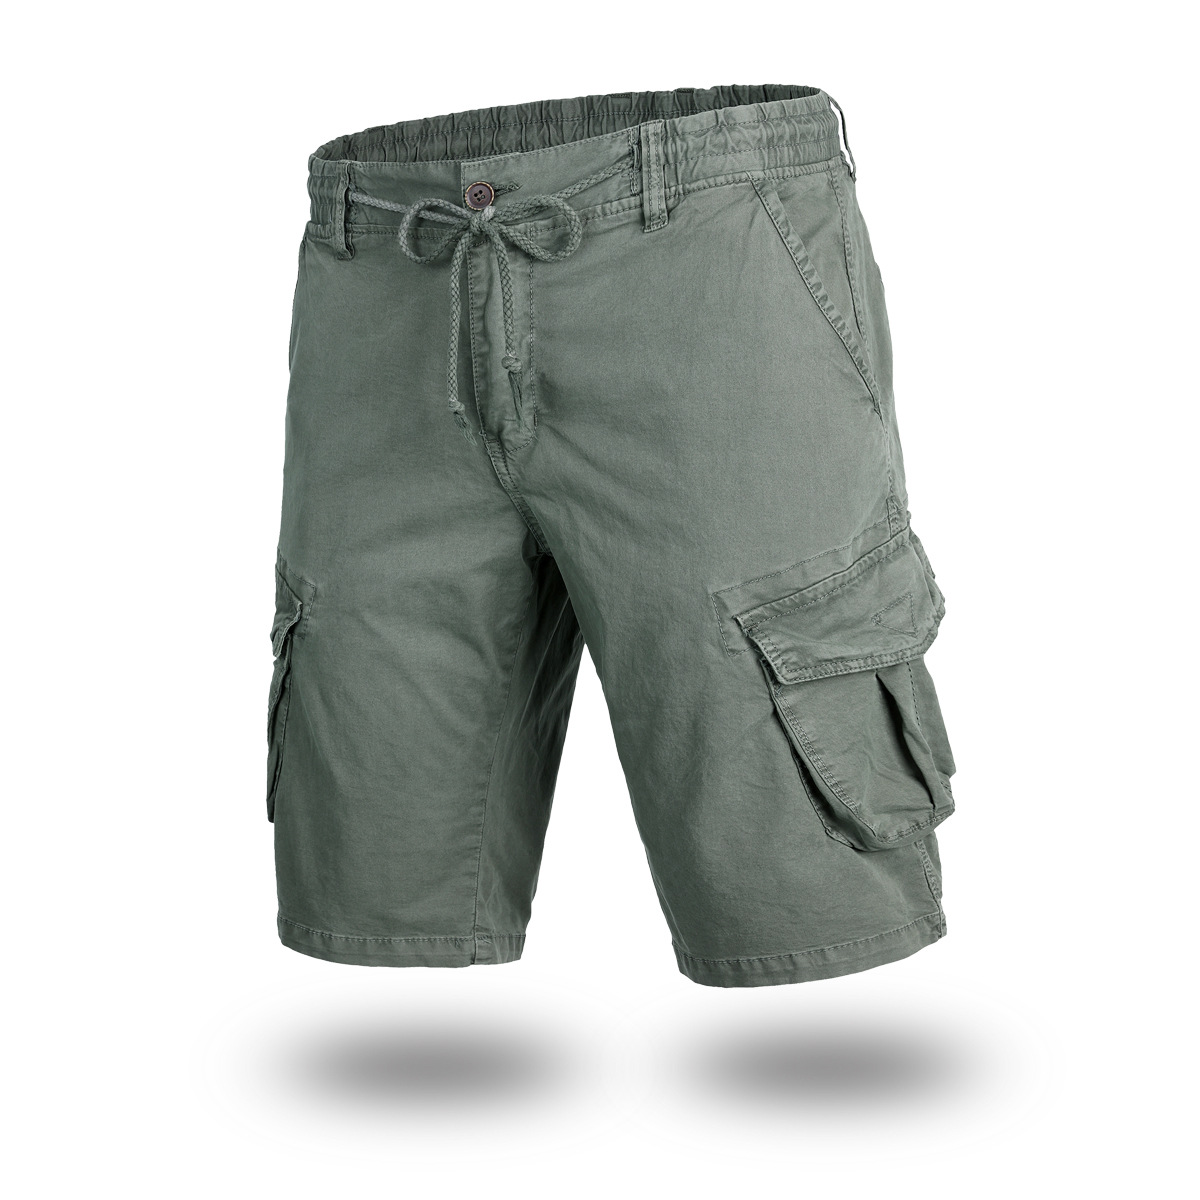 Cargo Shorts High Quality Outdoor Regular Straight Vintage Cross-Border Tooling Shorts Cargo Pants For Mens 17811